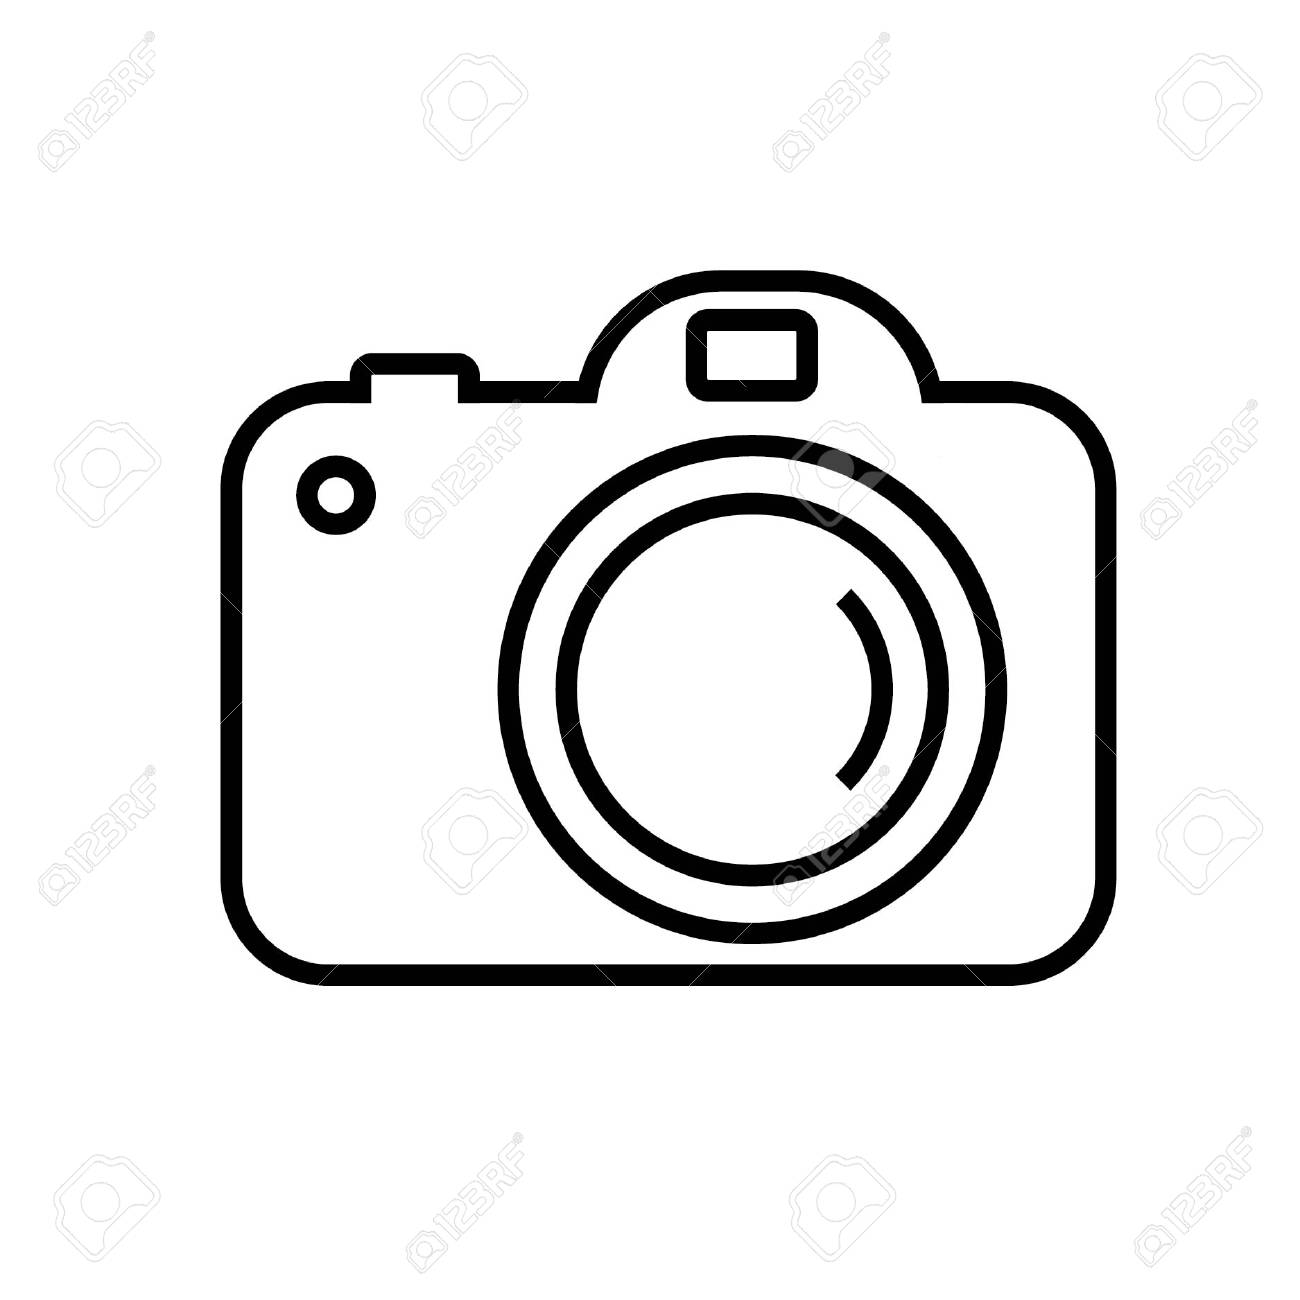 Simple camera clipart black and white